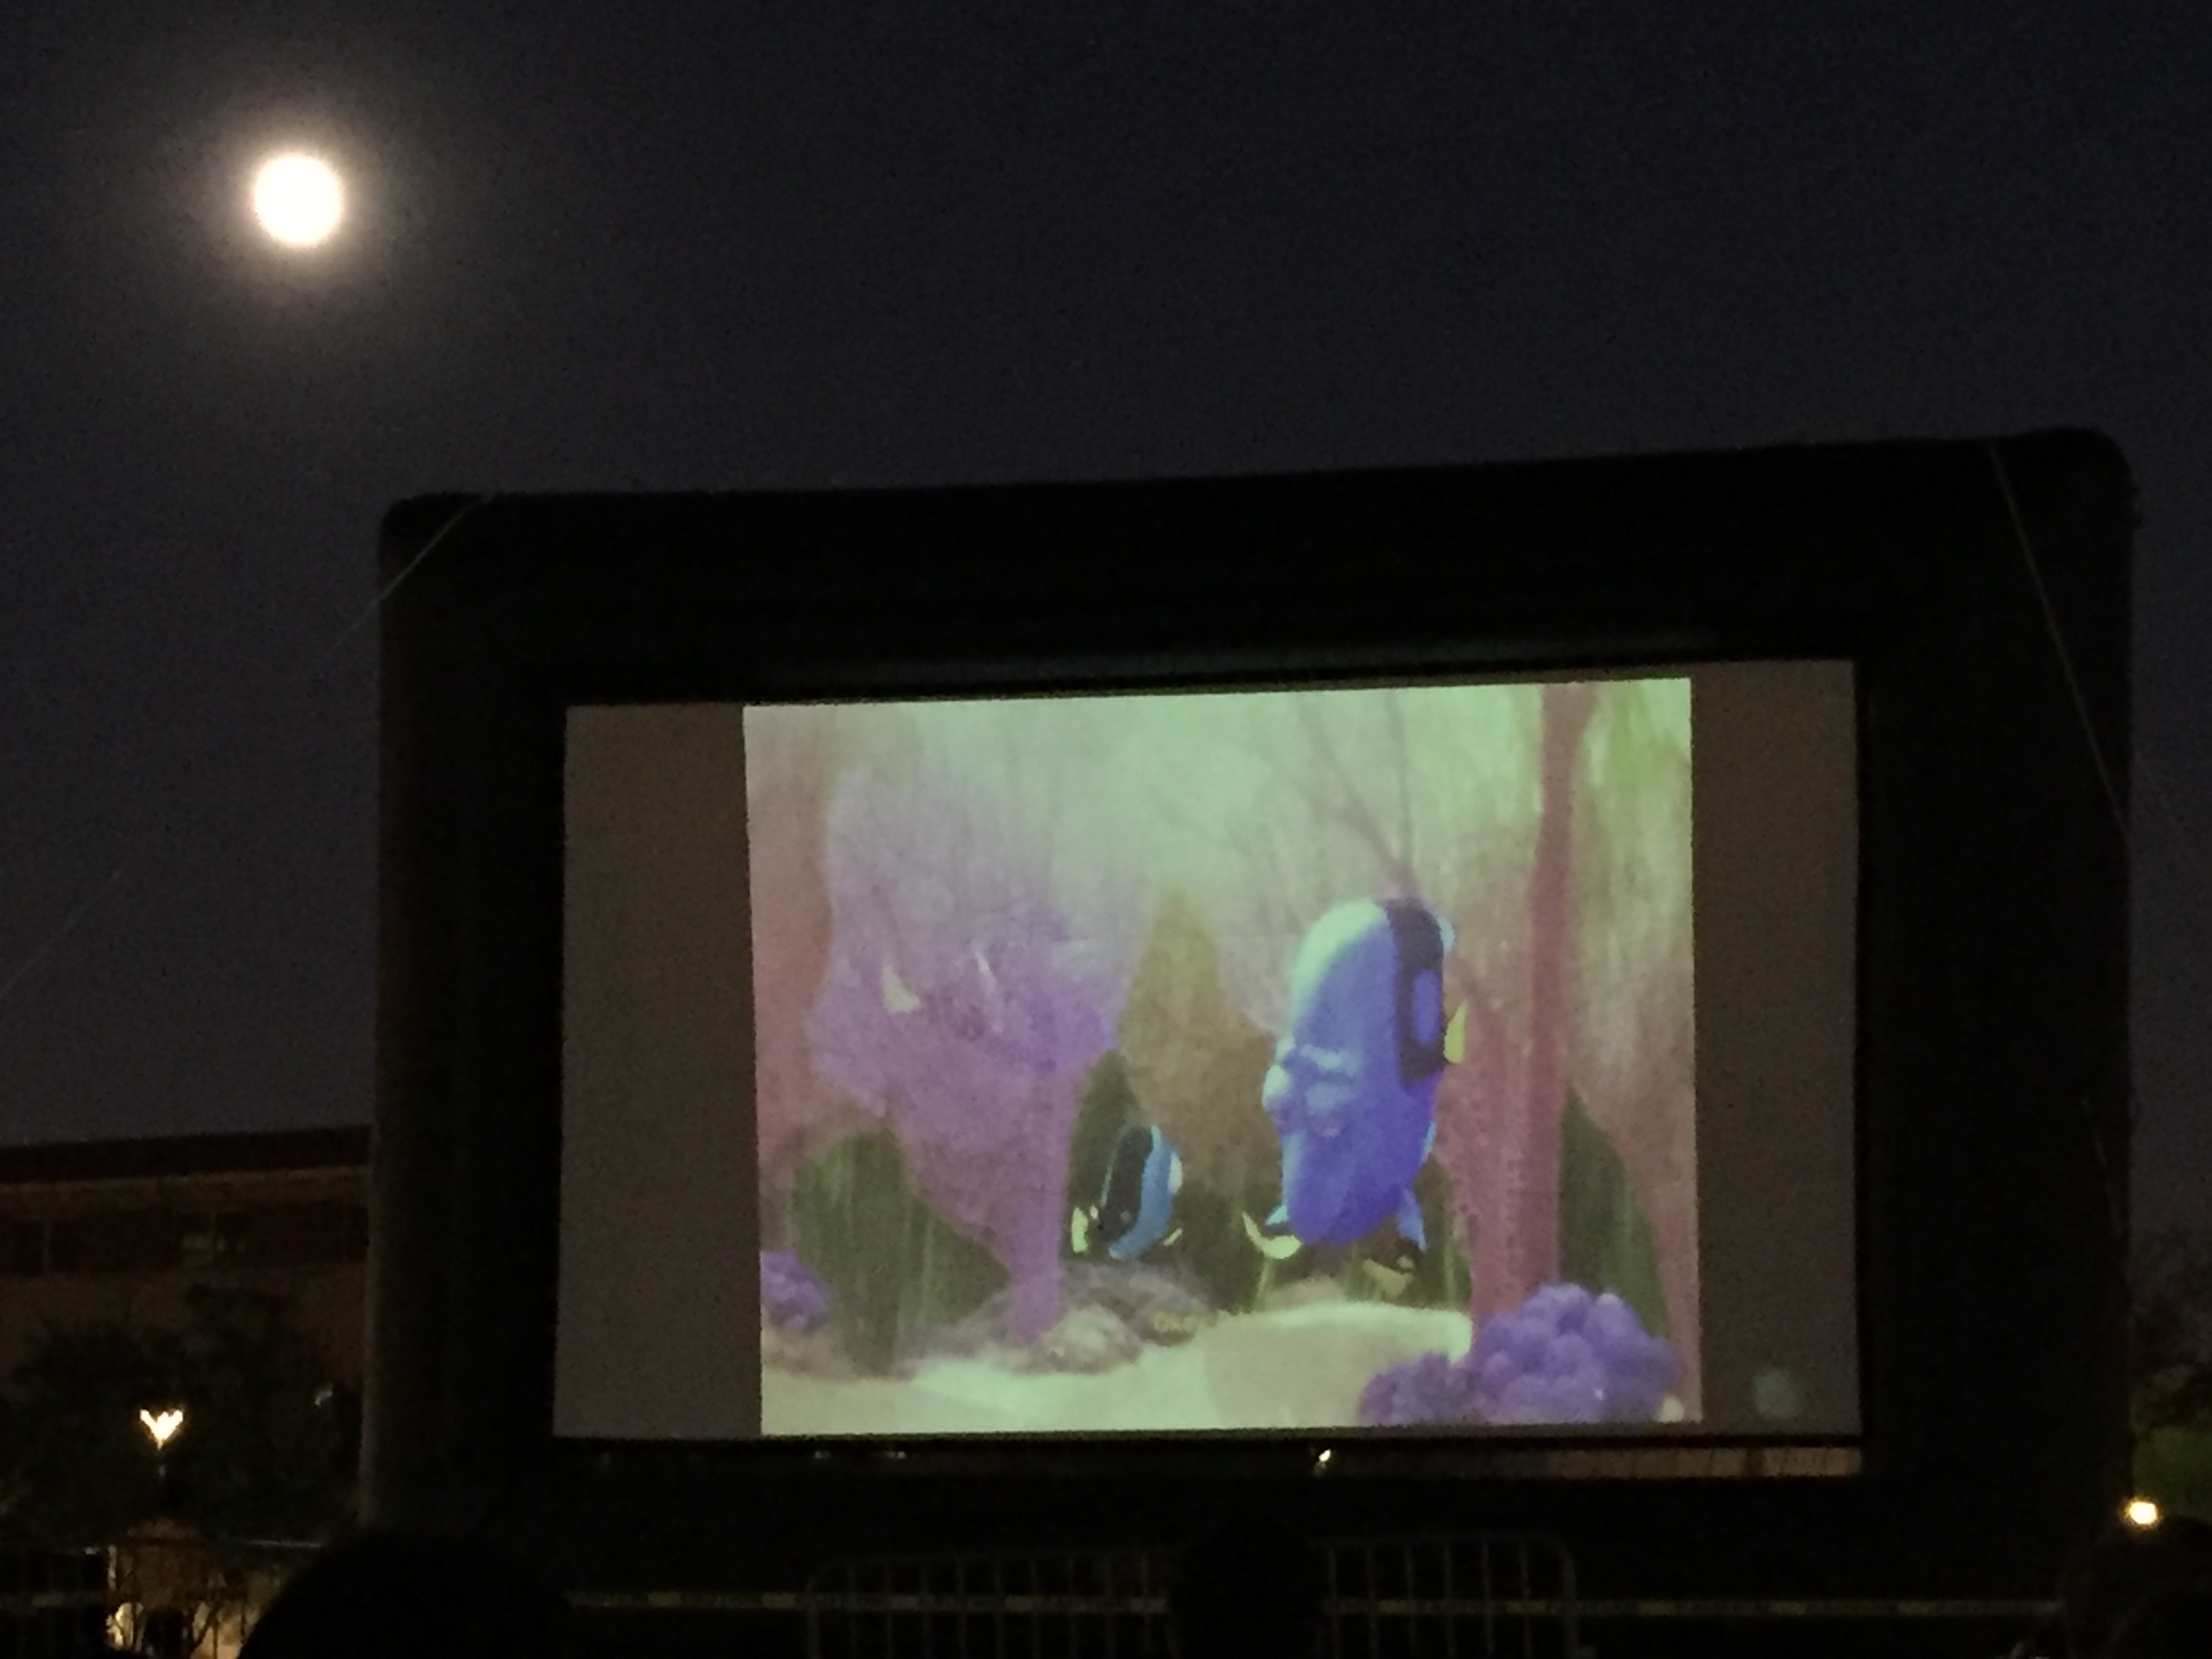 We started watching Finding Dory under the moon. :-)